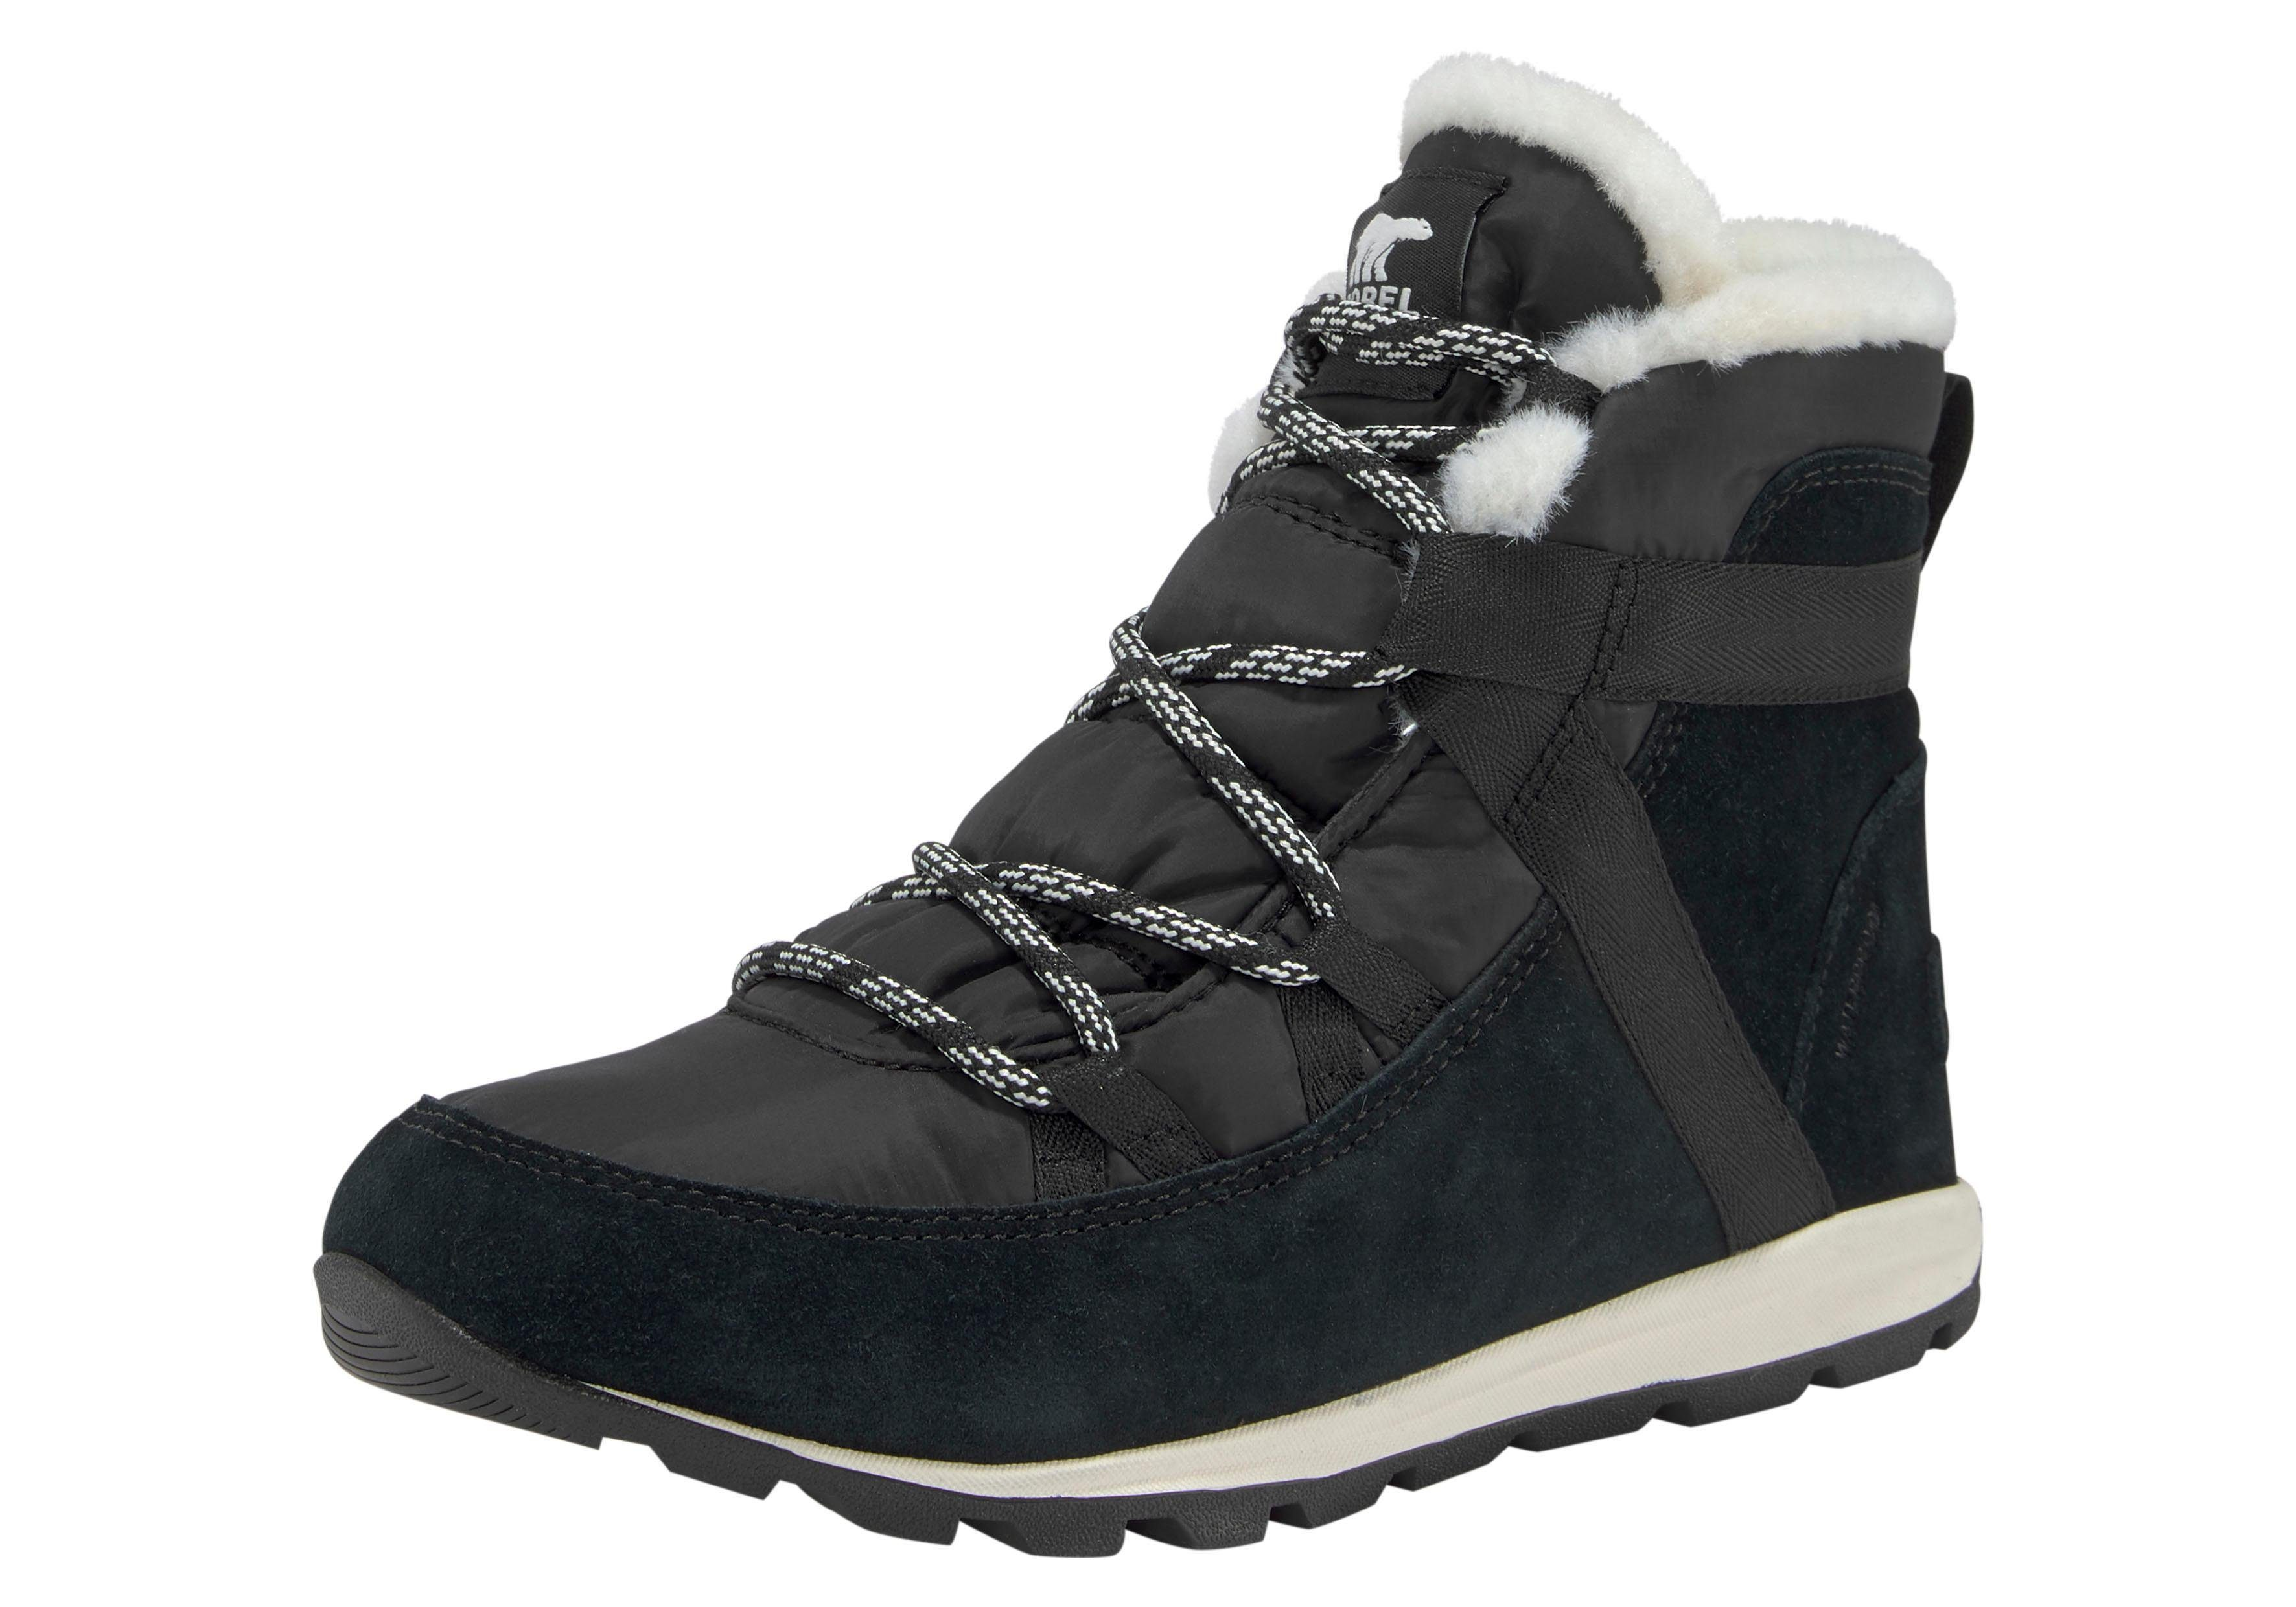 Sorel Outdoorwinterstiefel WHITNEY™ FLURRY | Schuhe > Outdoorschuhe > Outdoorwinterstiefel | Sorel